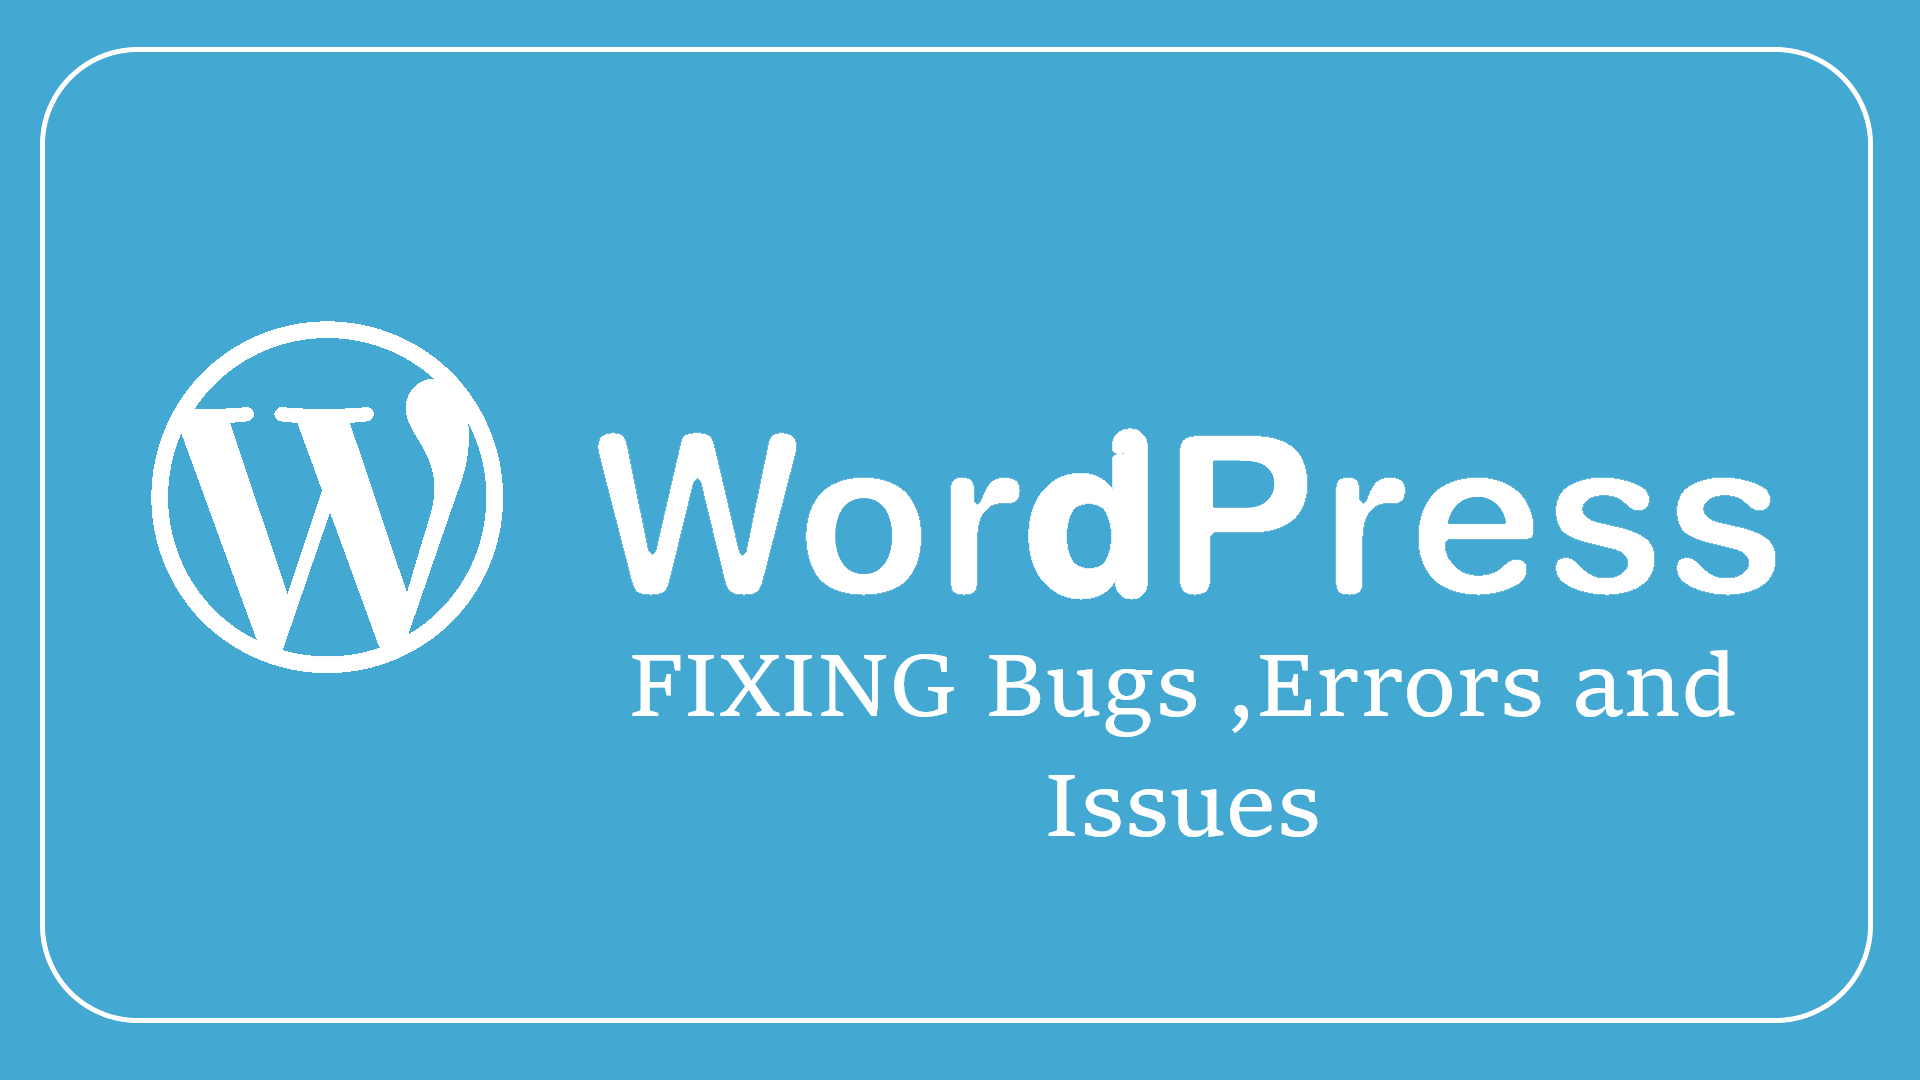 Fix up your wordpress bugs